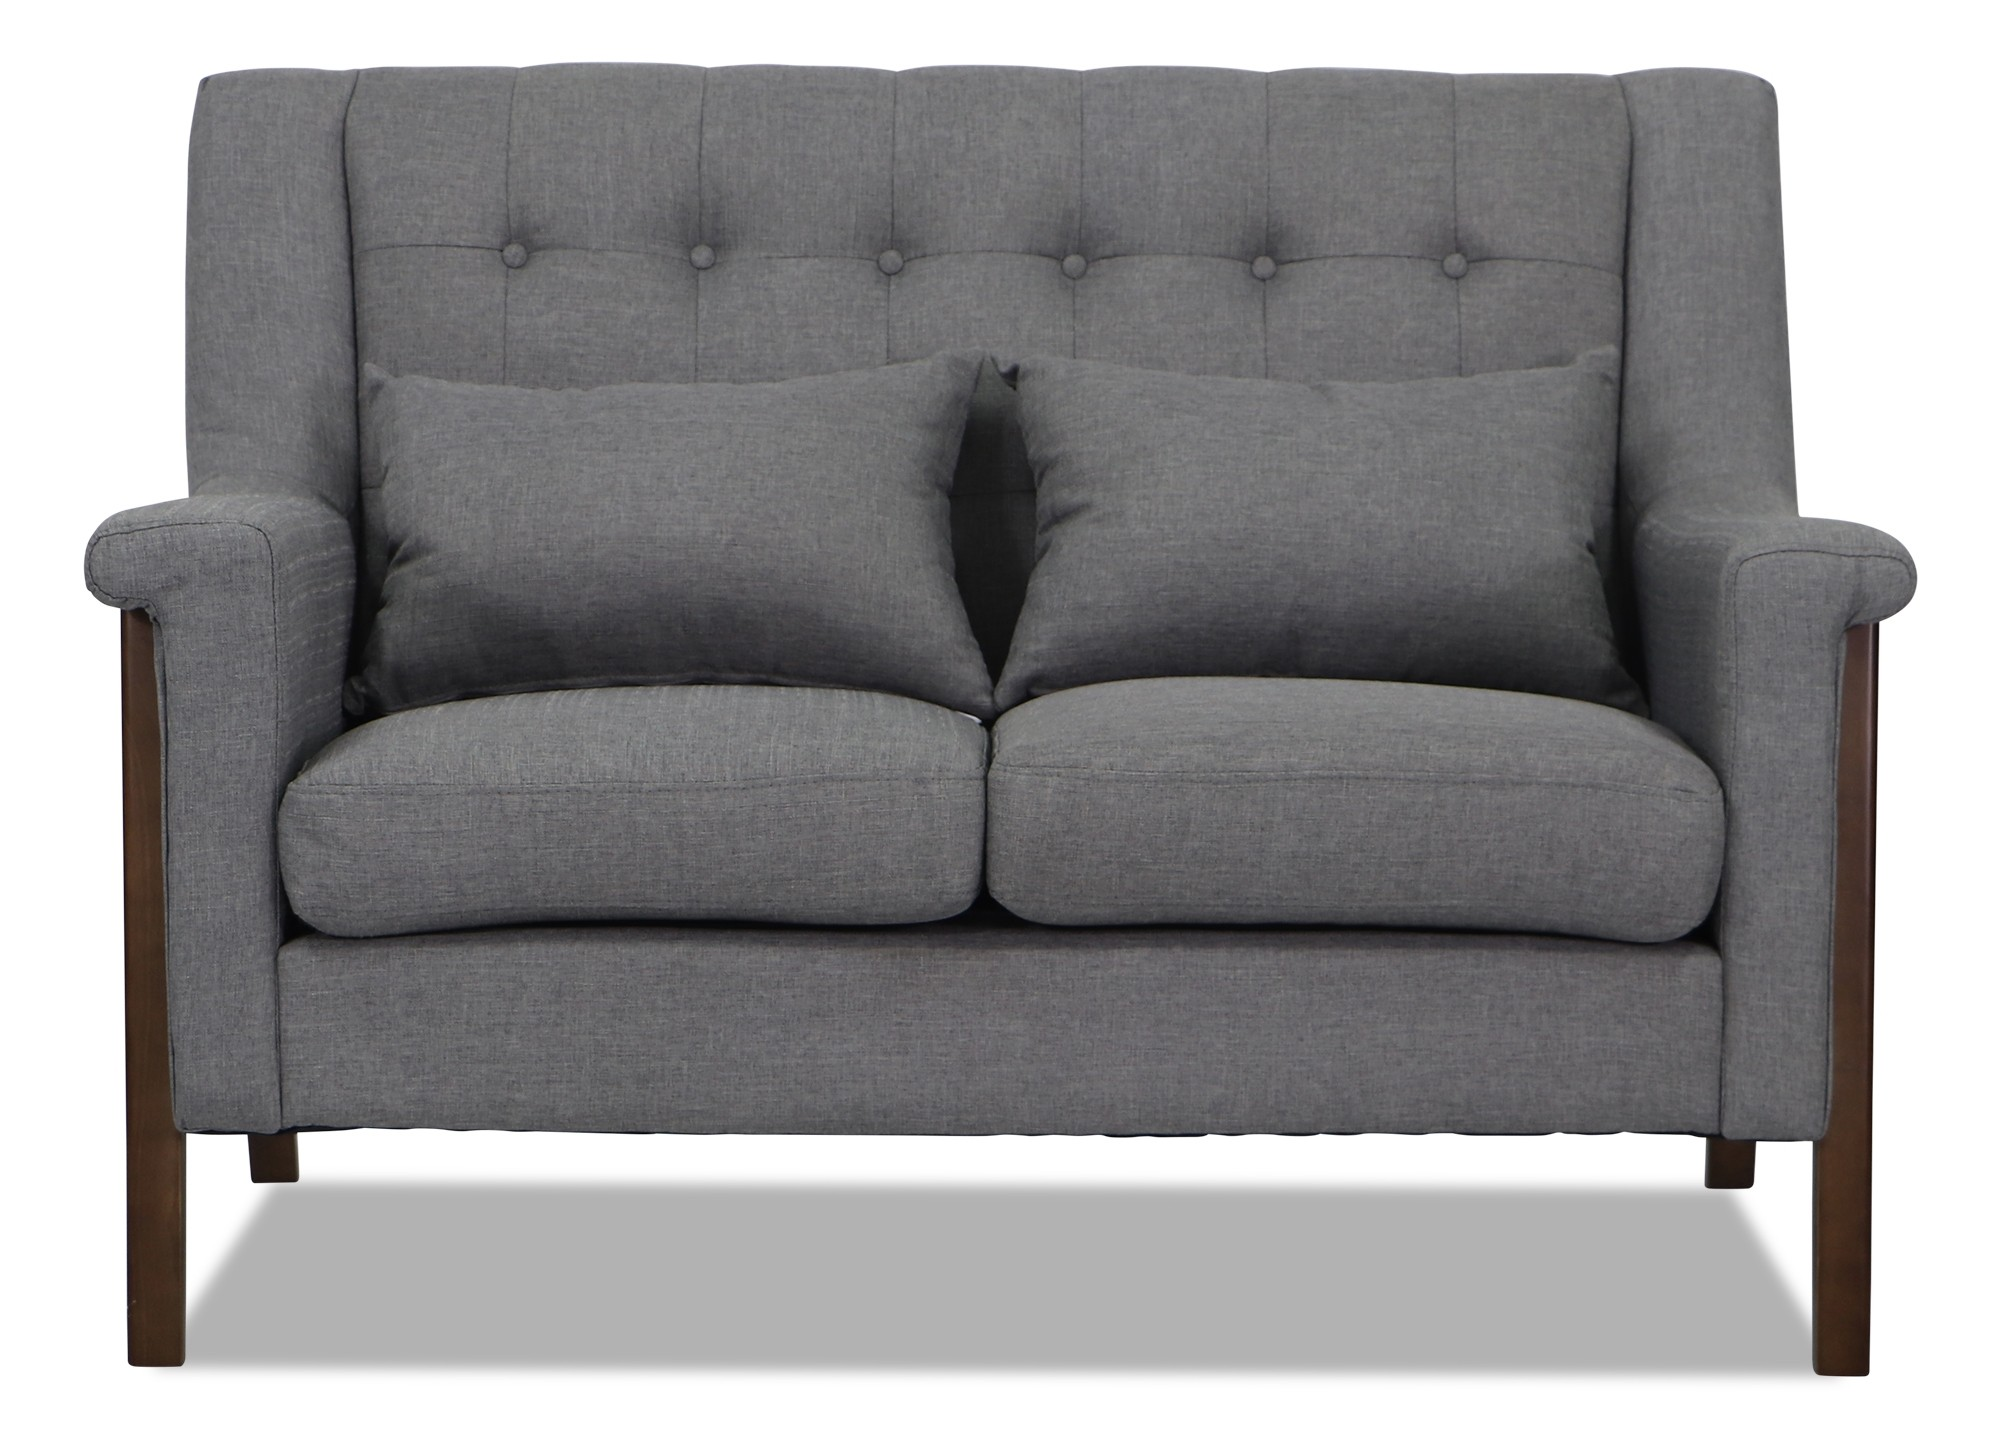 Patty 2 Seater Sofa Furniture & Home Décor